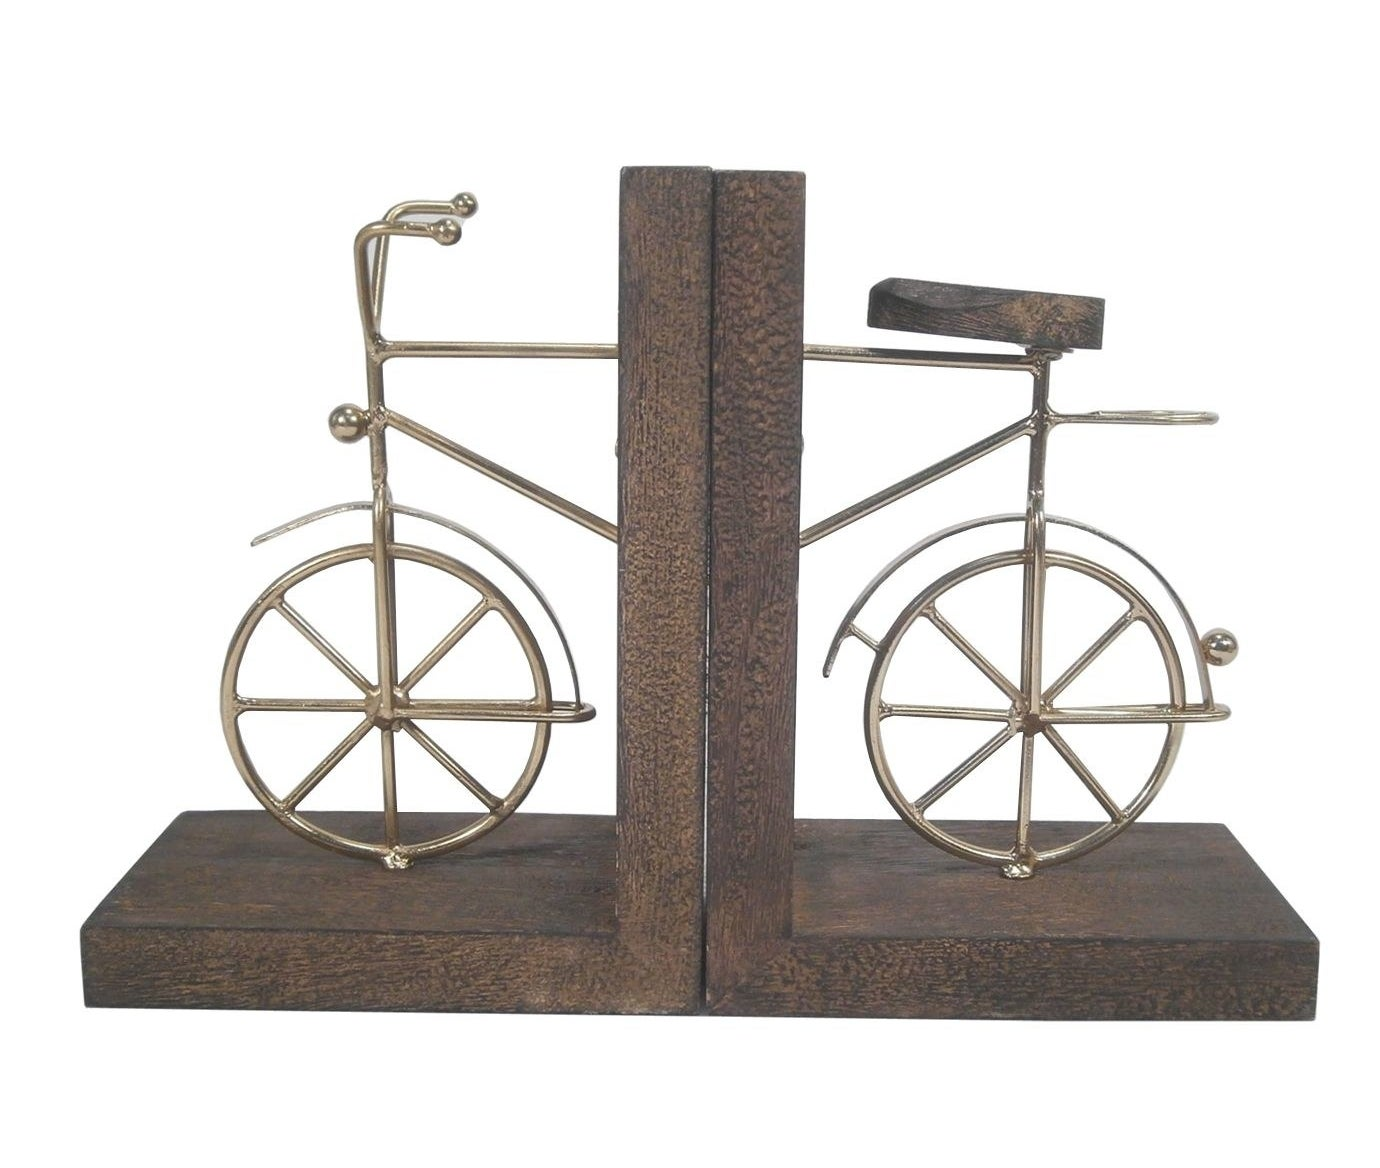 The two bookends, with a metal design of the front and back of a bike